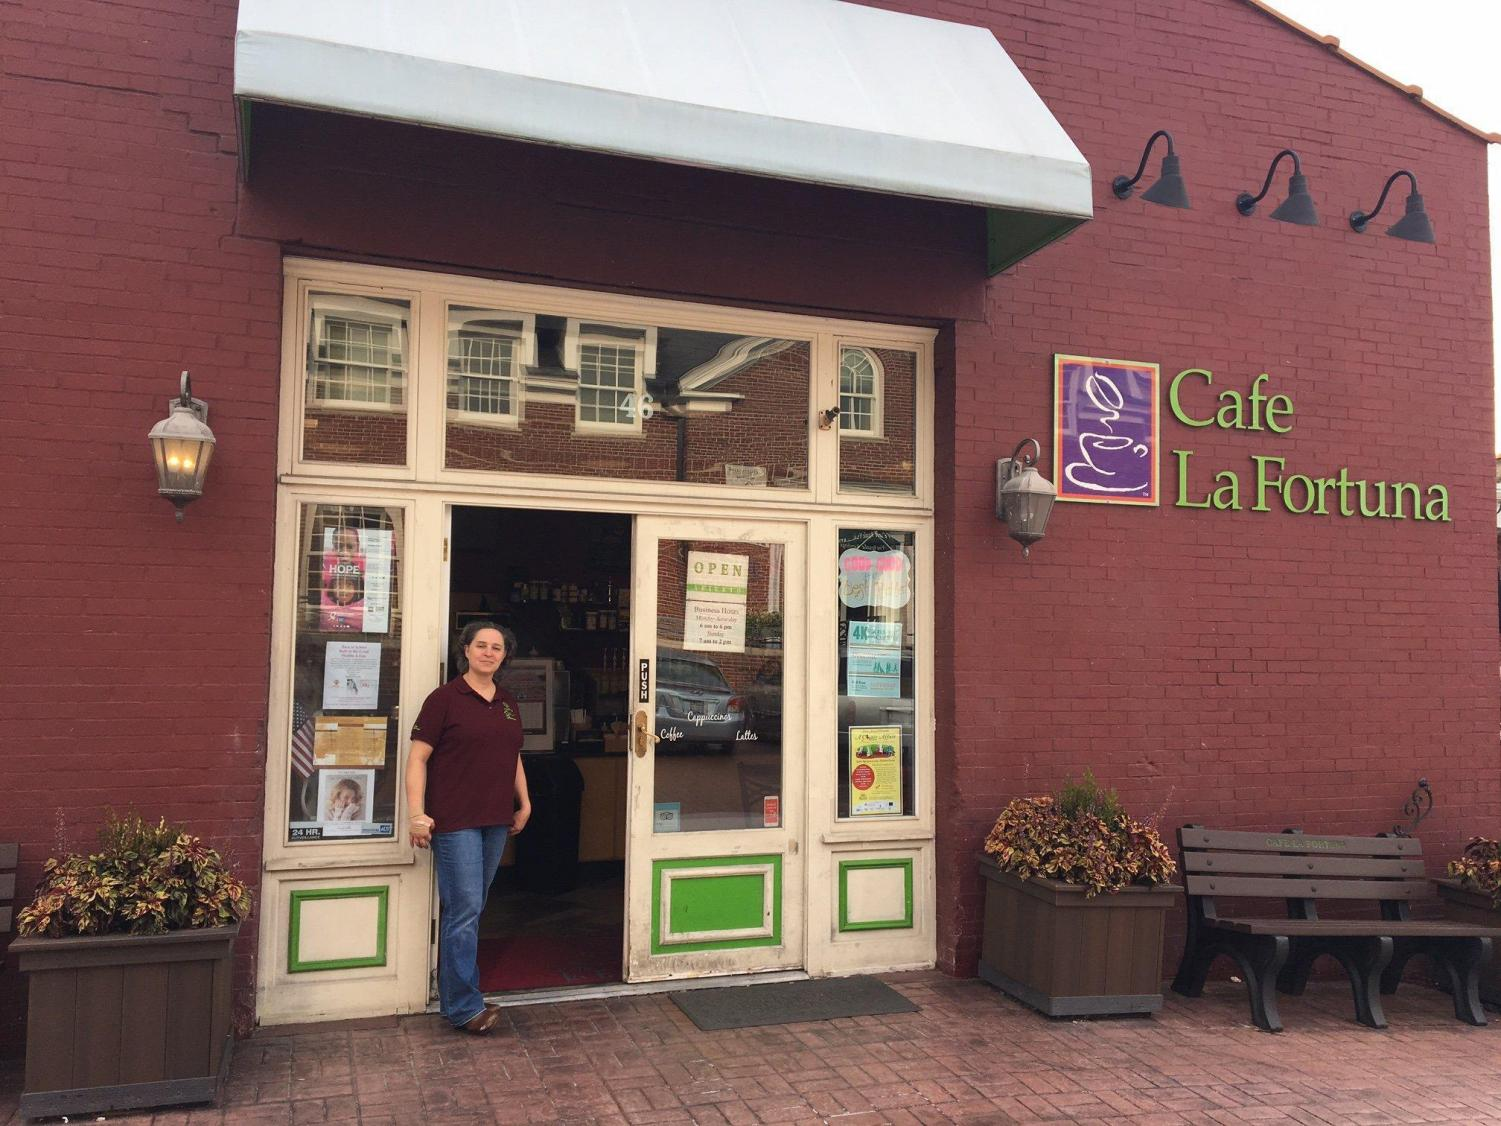 Mrs. Angela Lavelli is part of the Cafe La Fortuna family ownership.